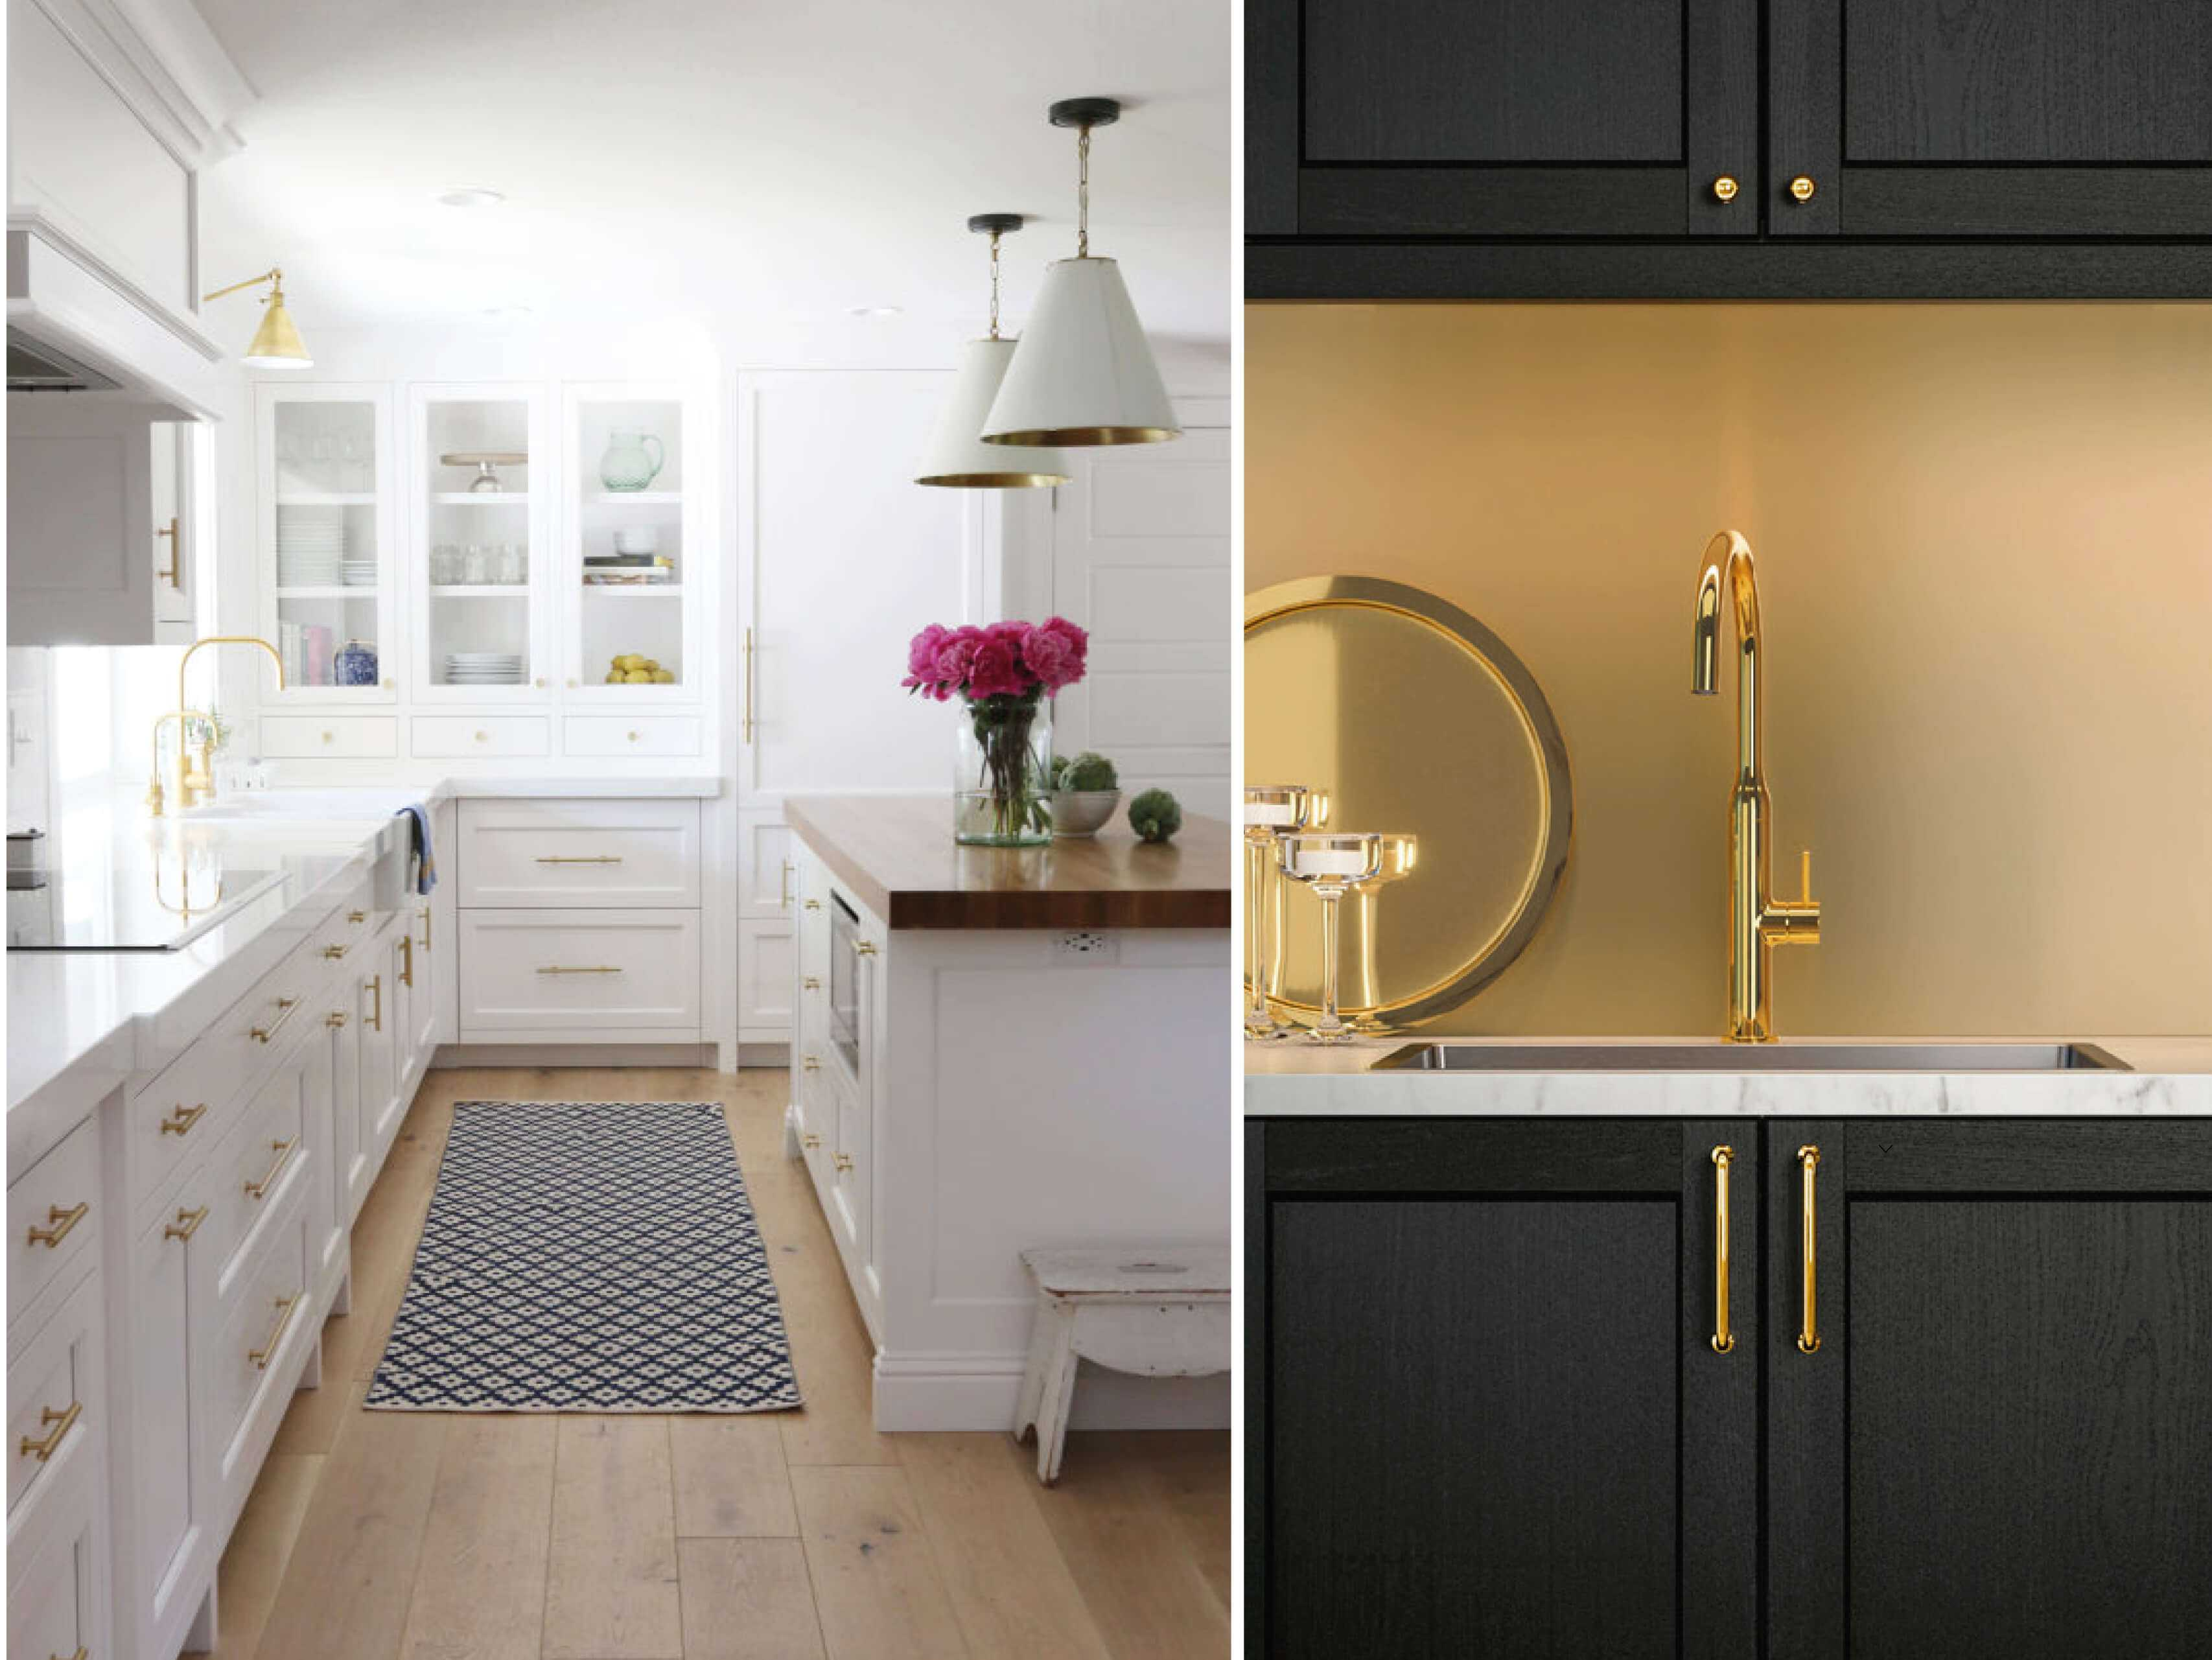 Gold Handles in the Kitchen Images via Pinterest/Ikea